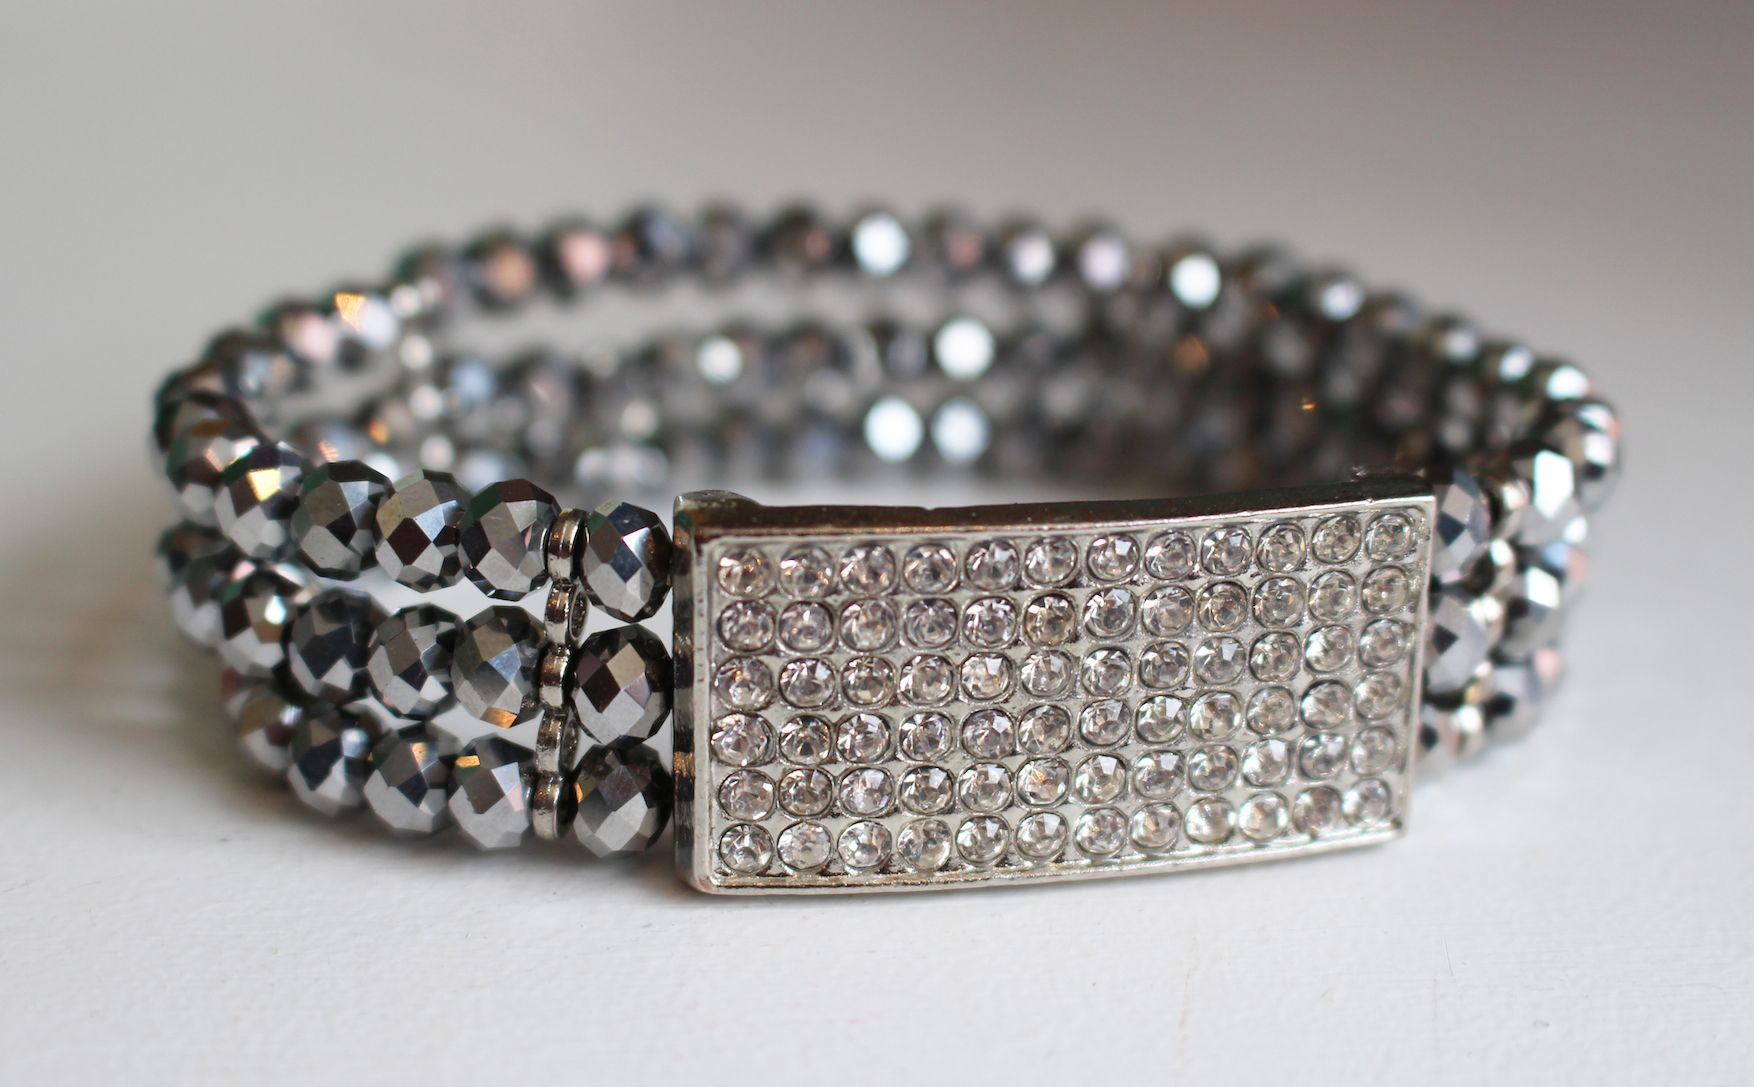 A glamorous bracelet featuring striking beads and a rhinestone, covered bar. ($34)